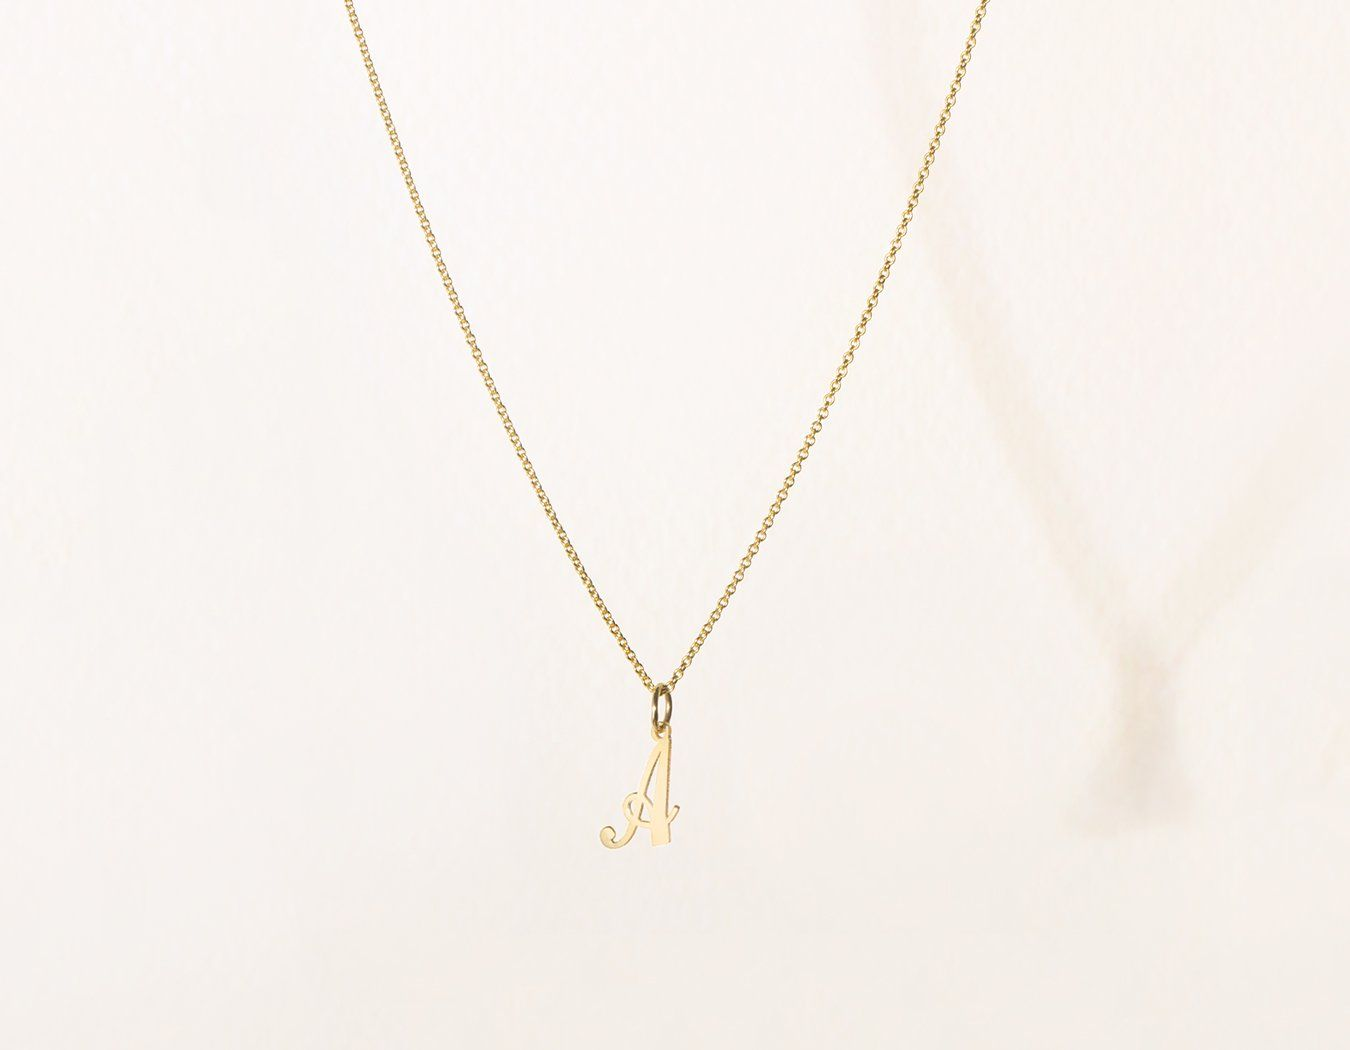 dc71c112d0f vrai and Oro simple classic 14k Solid Gold Letter Pendant charm on oval  link chain, 14K Yellow Gold